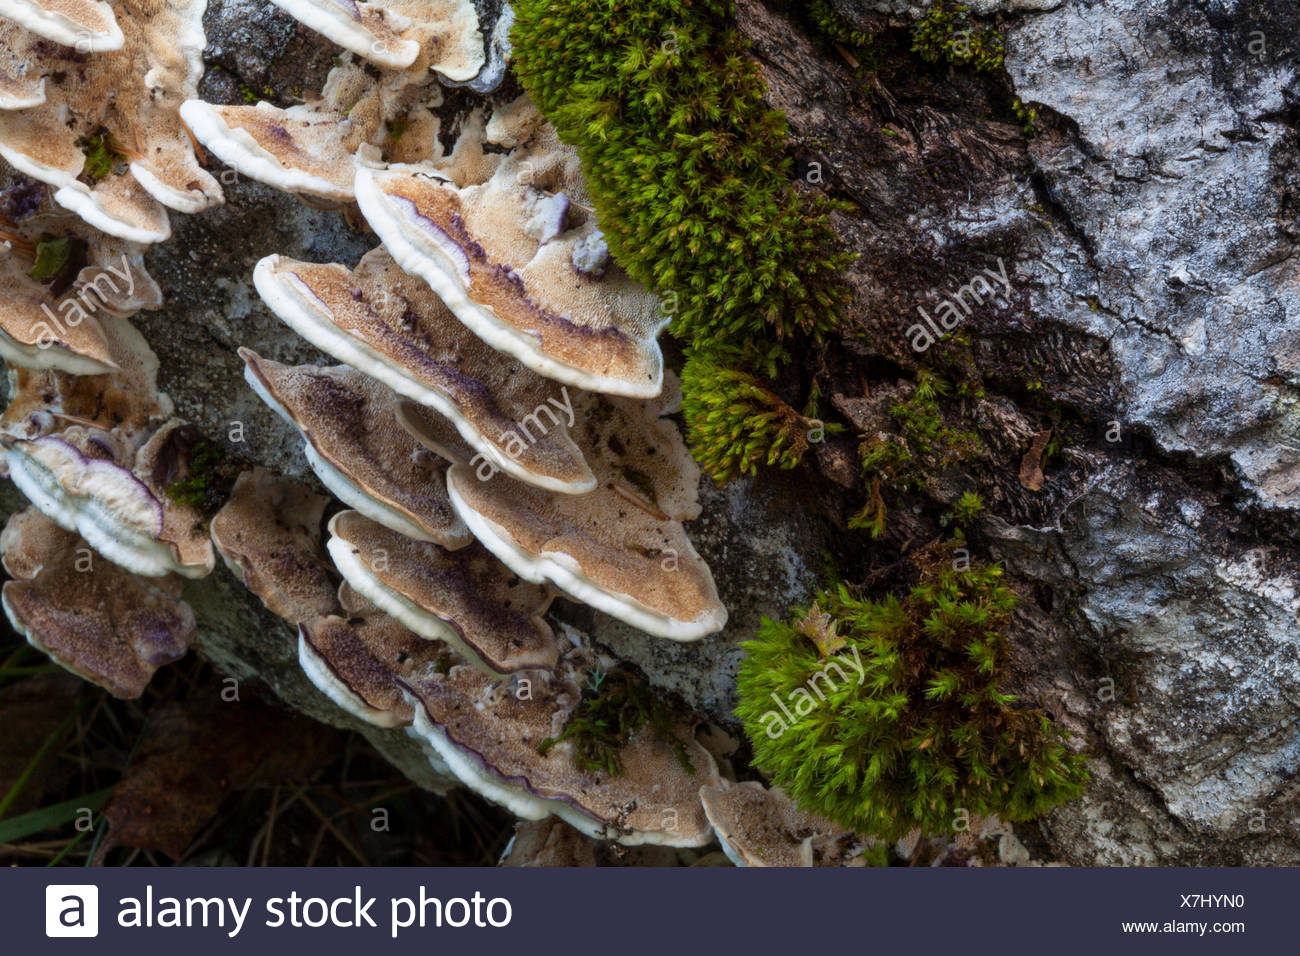 Turkey tail mushrooms, valued for their medicinal properties, are common in Maine. - Stock Image